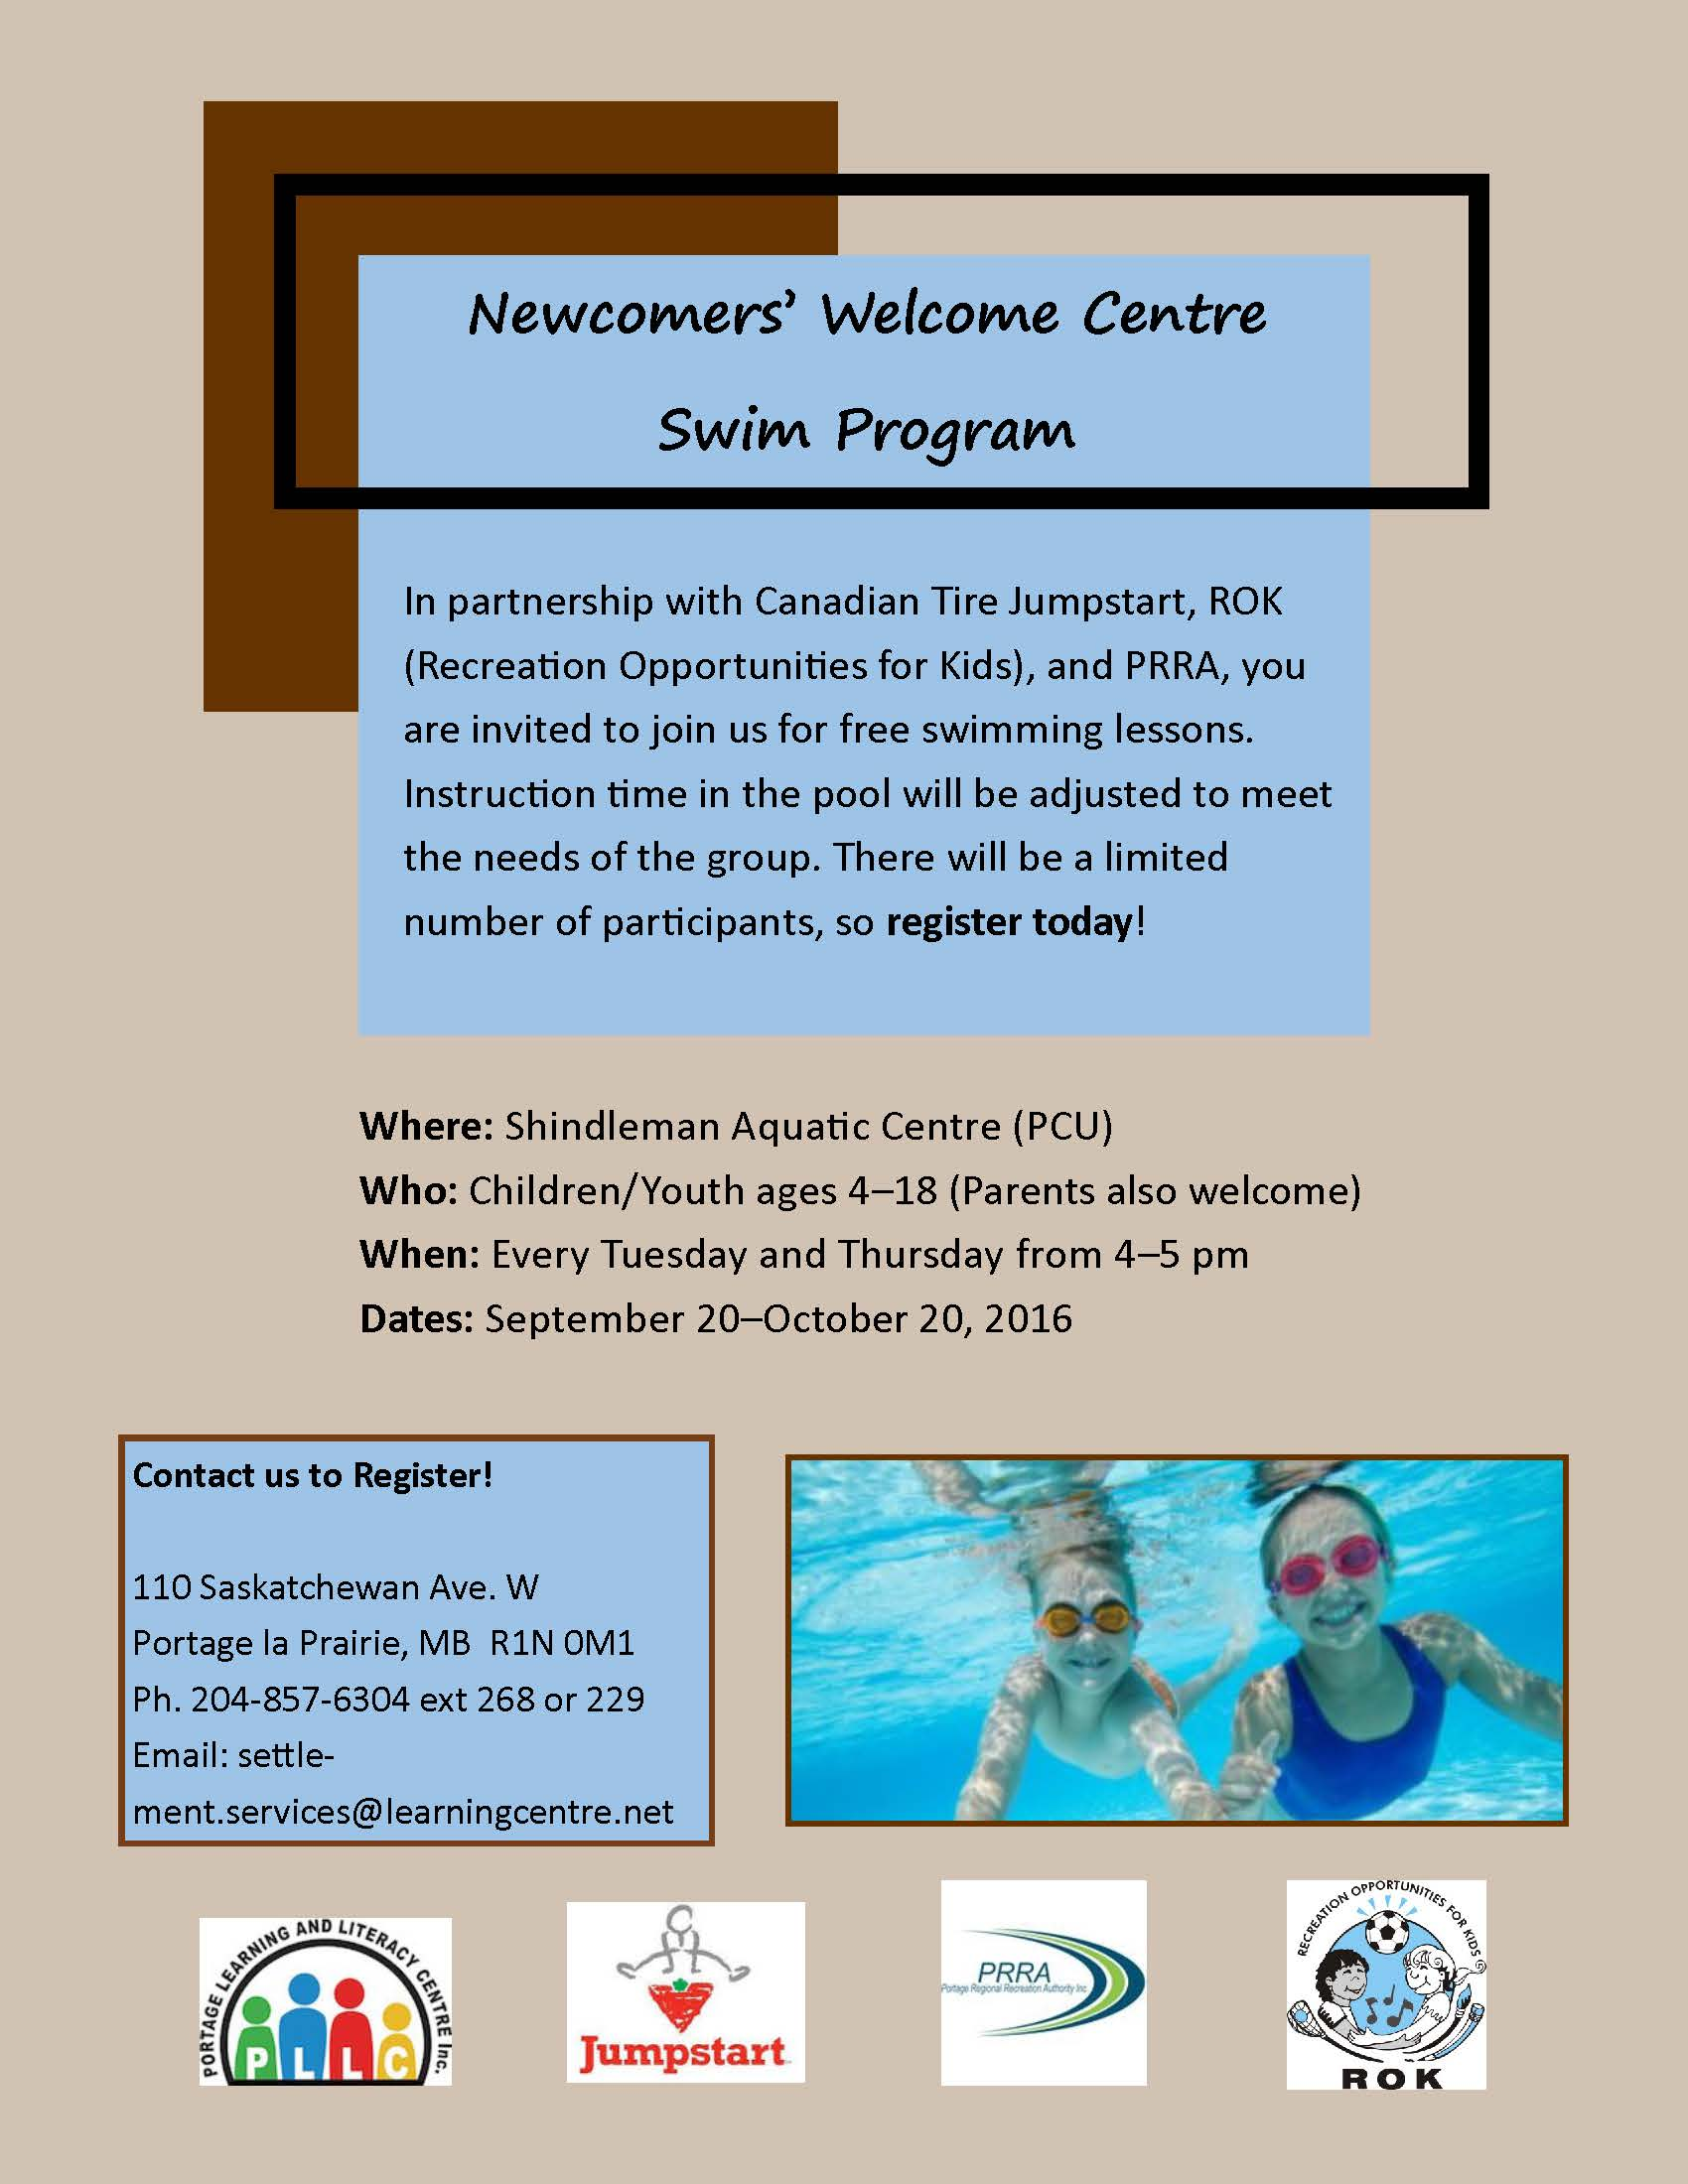 Newcomers' Welcome Centre Swim Program